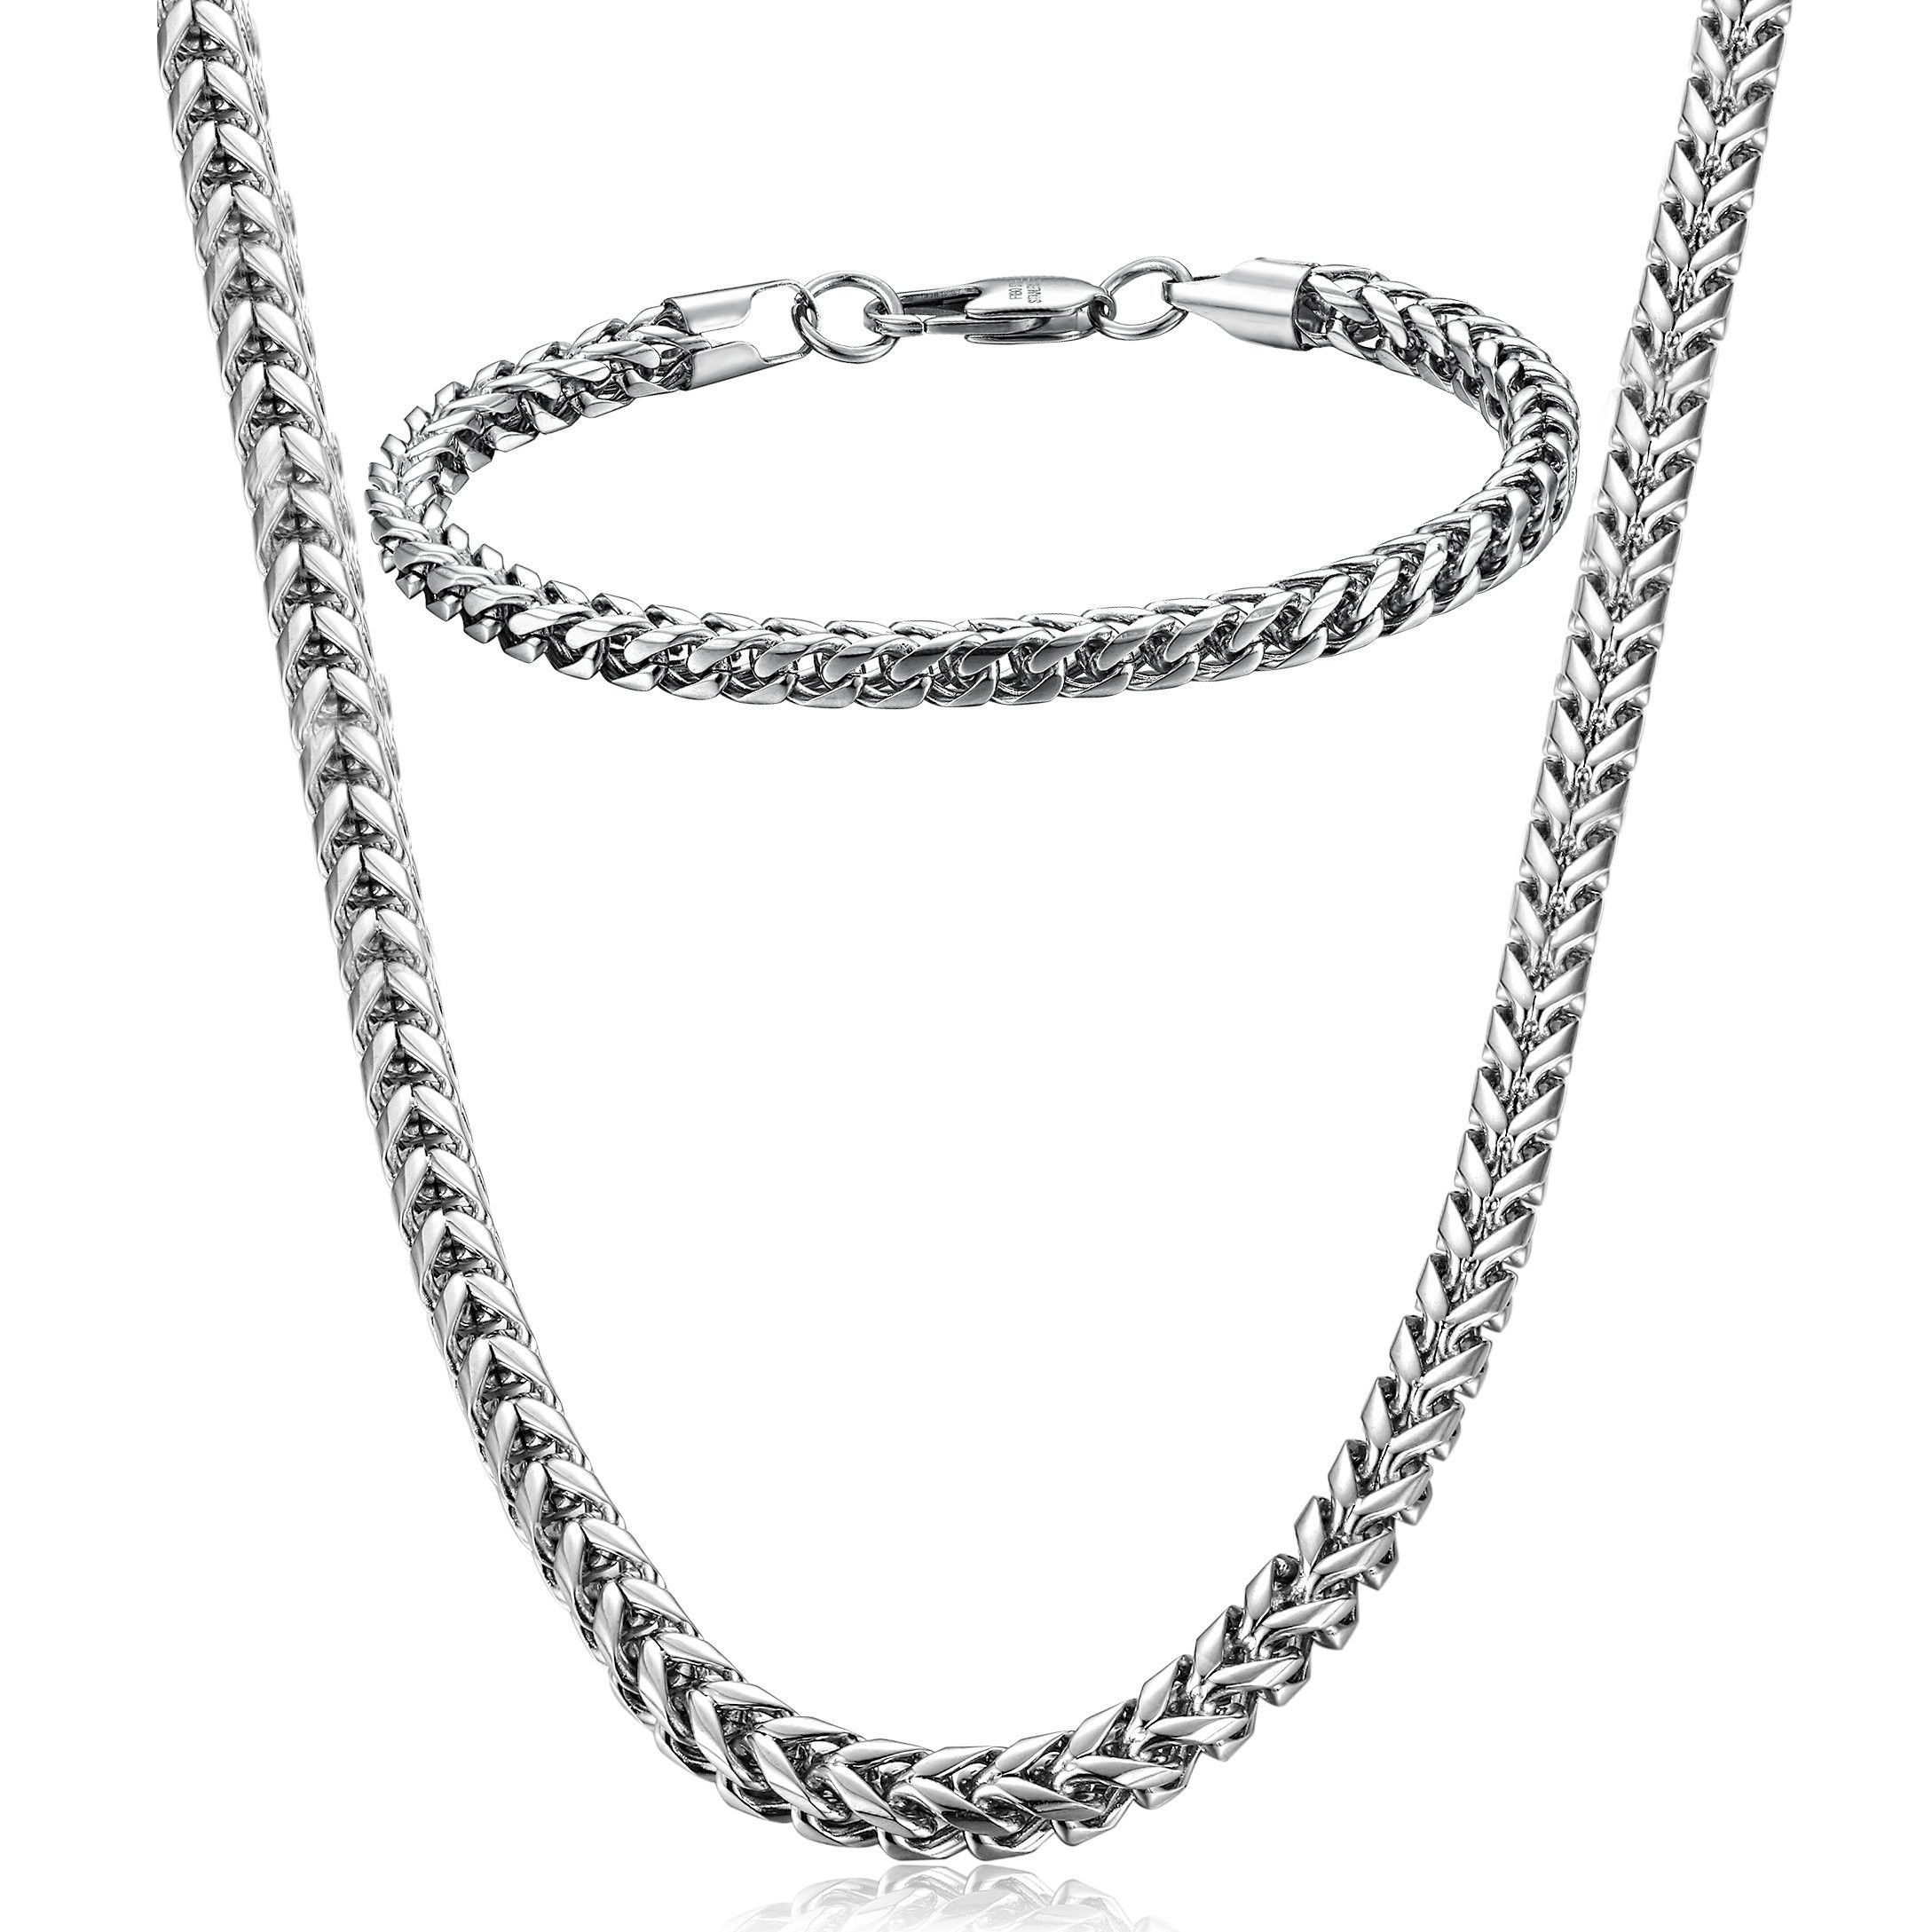 Fibo steel stainless steel wheat chain necklace for men women